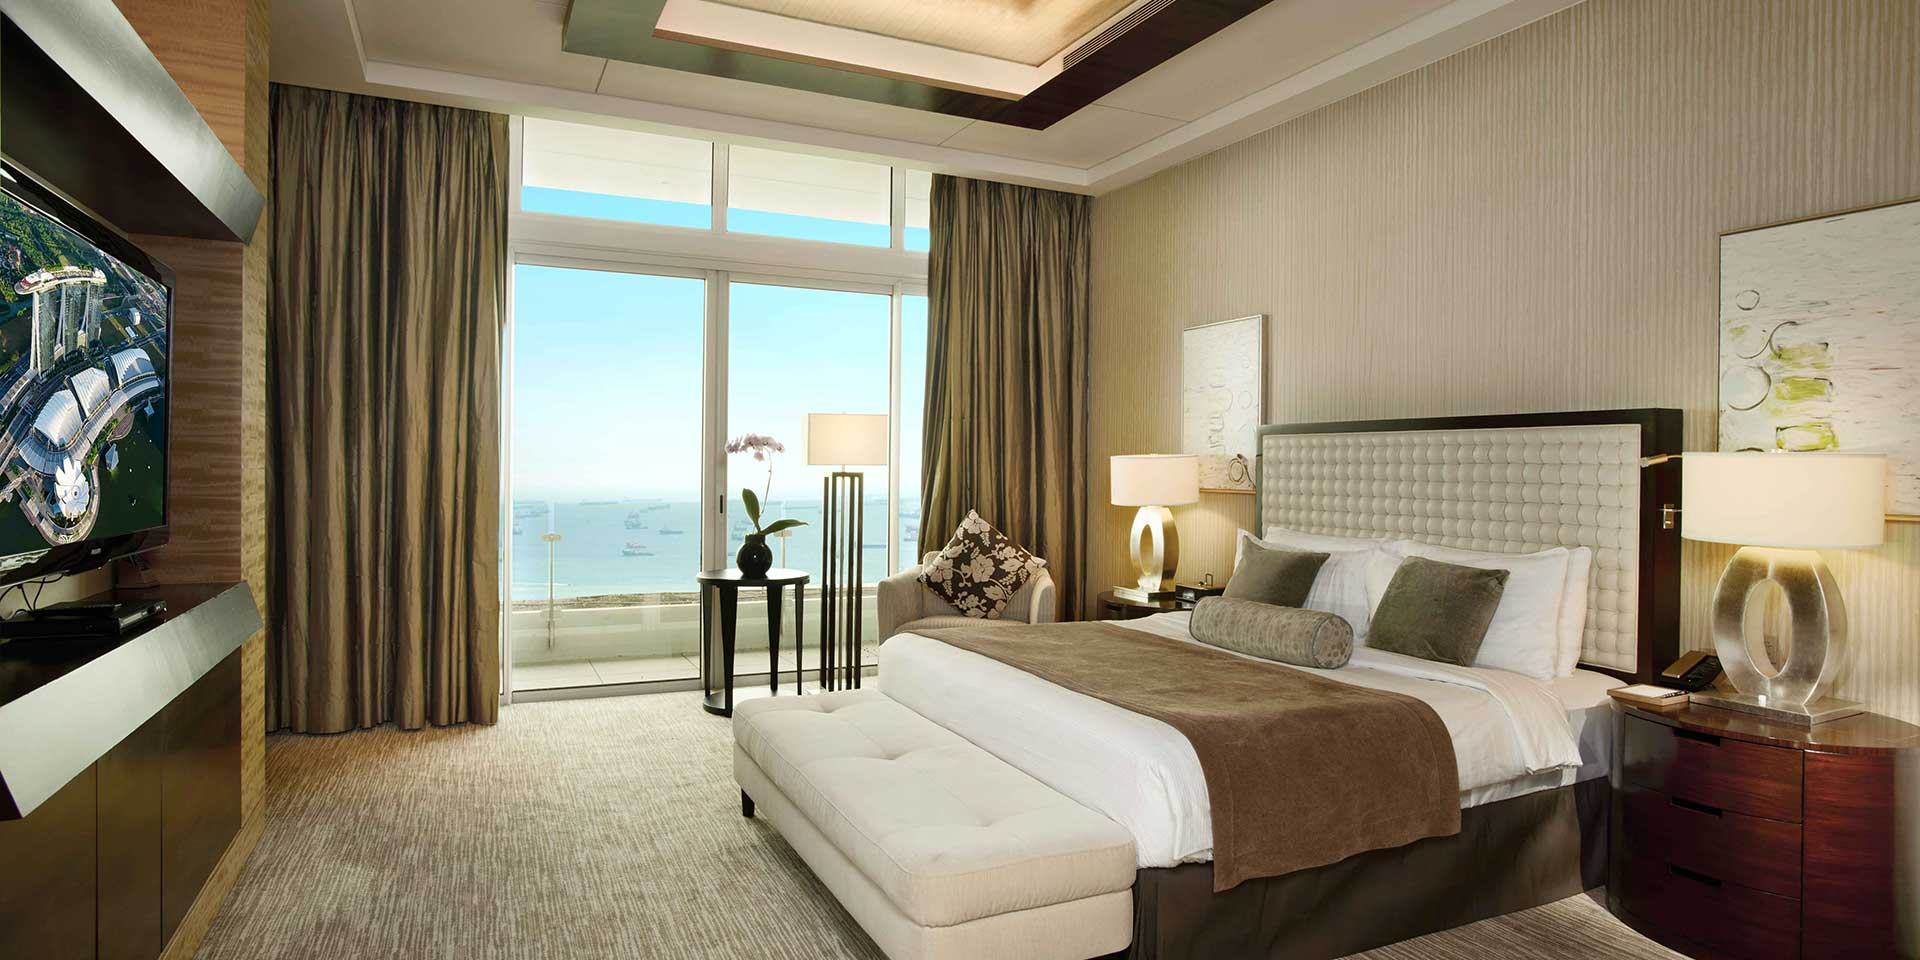 Marina Suite Master Bedroom